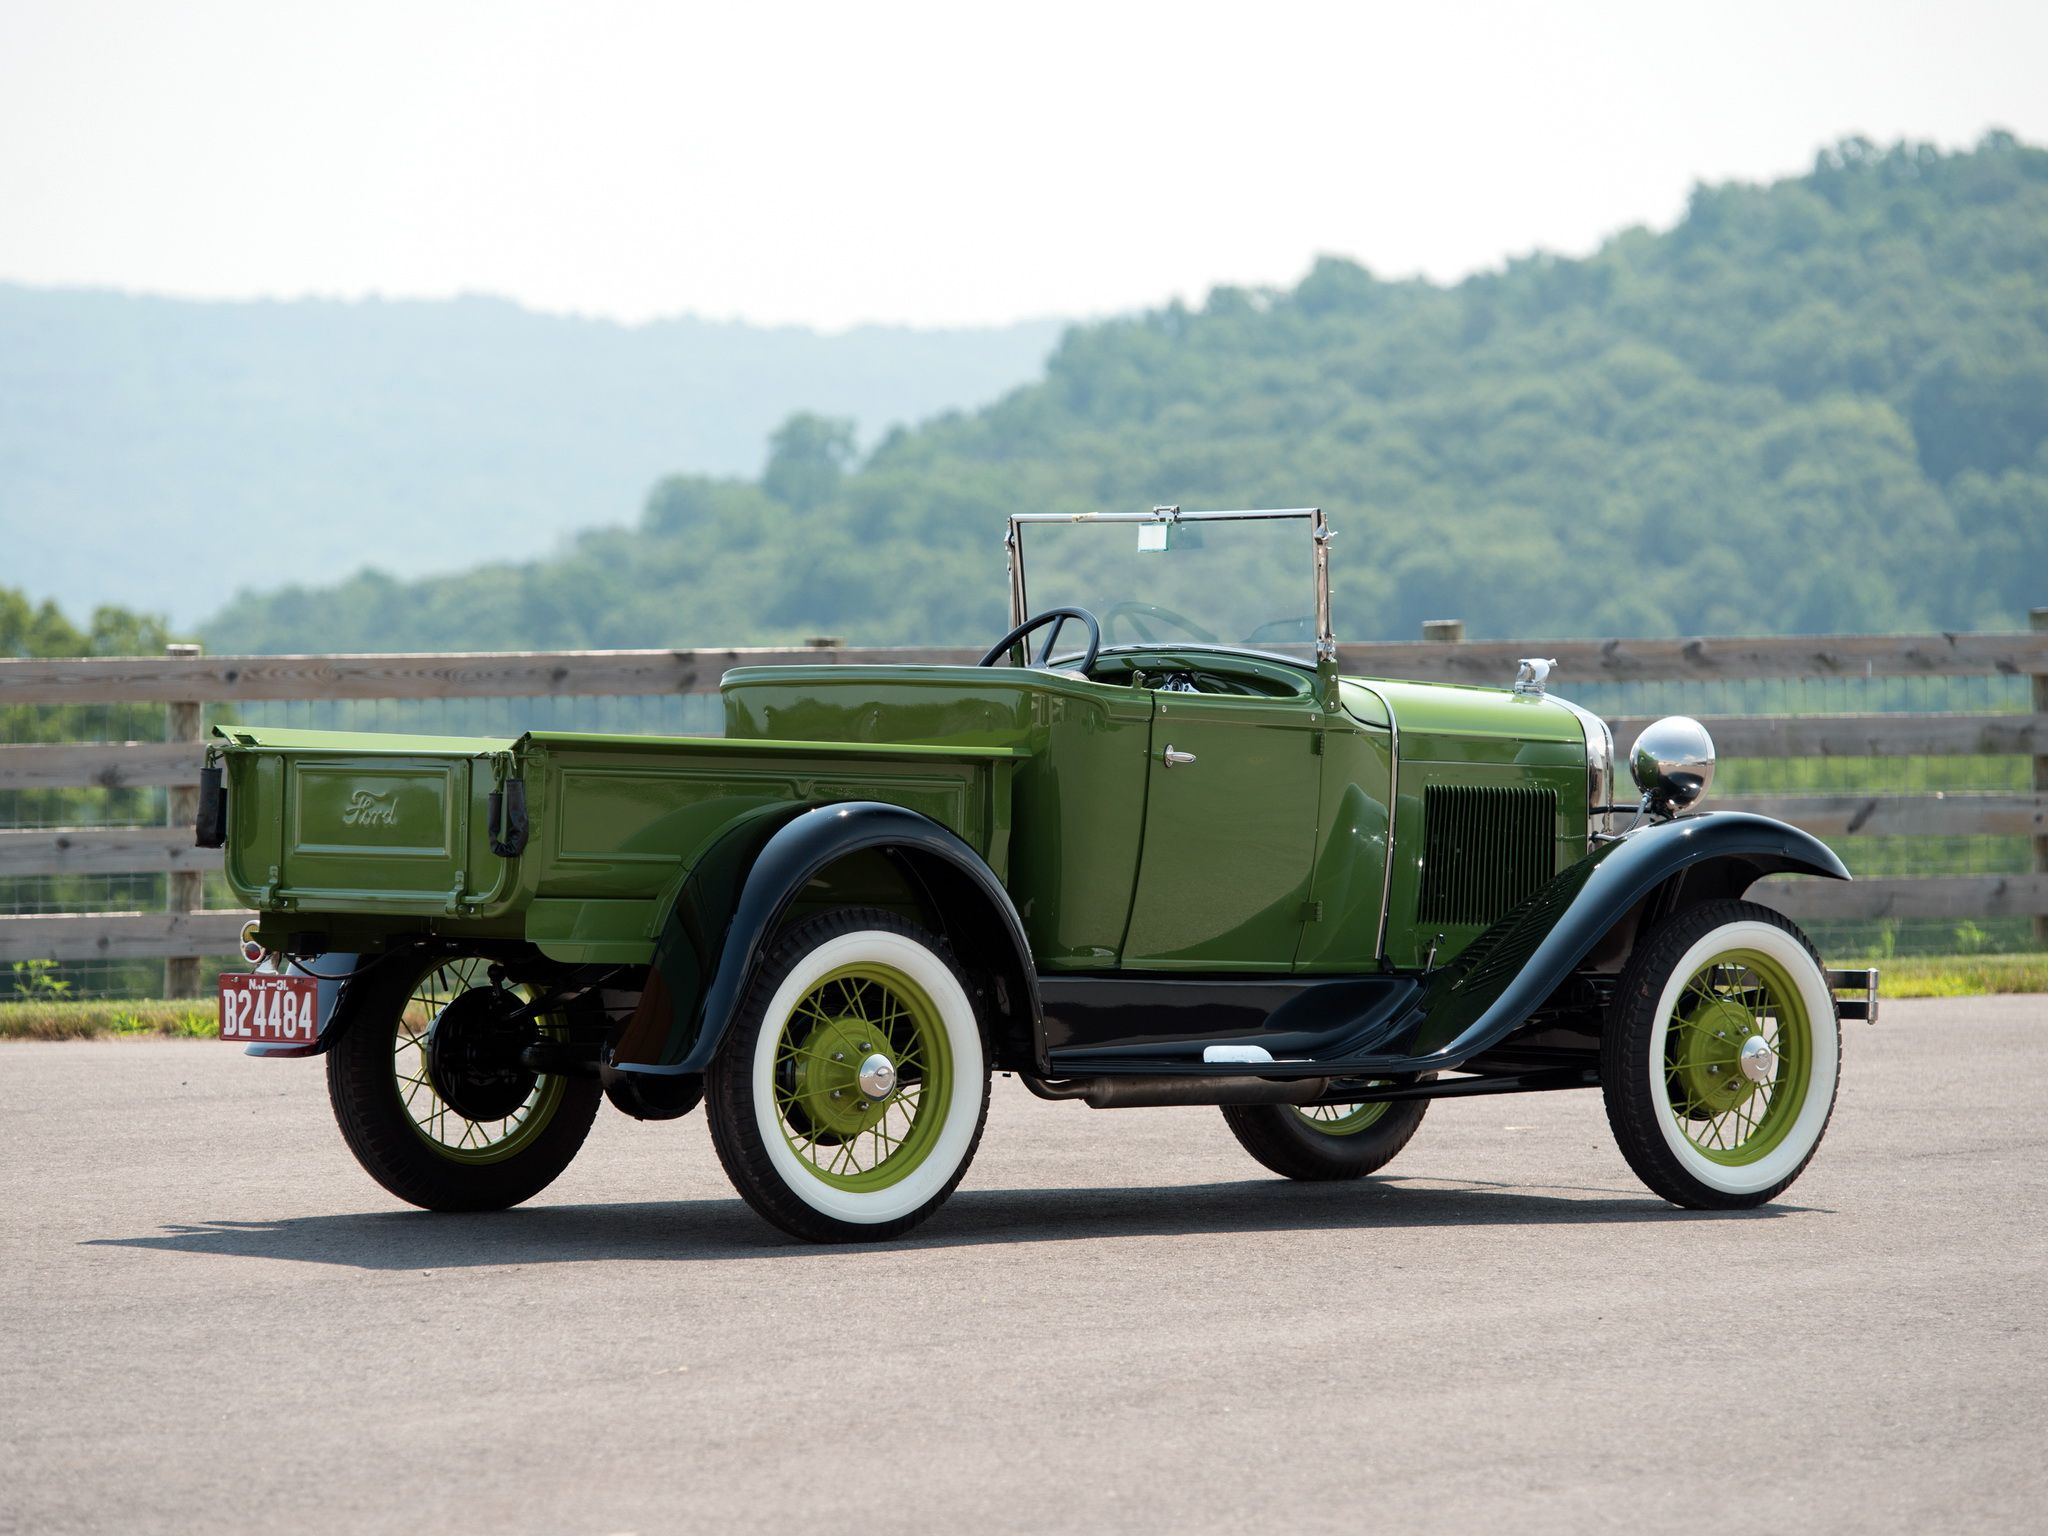 1930 31 Ford Model A Open Cab Pickup With Images Classic